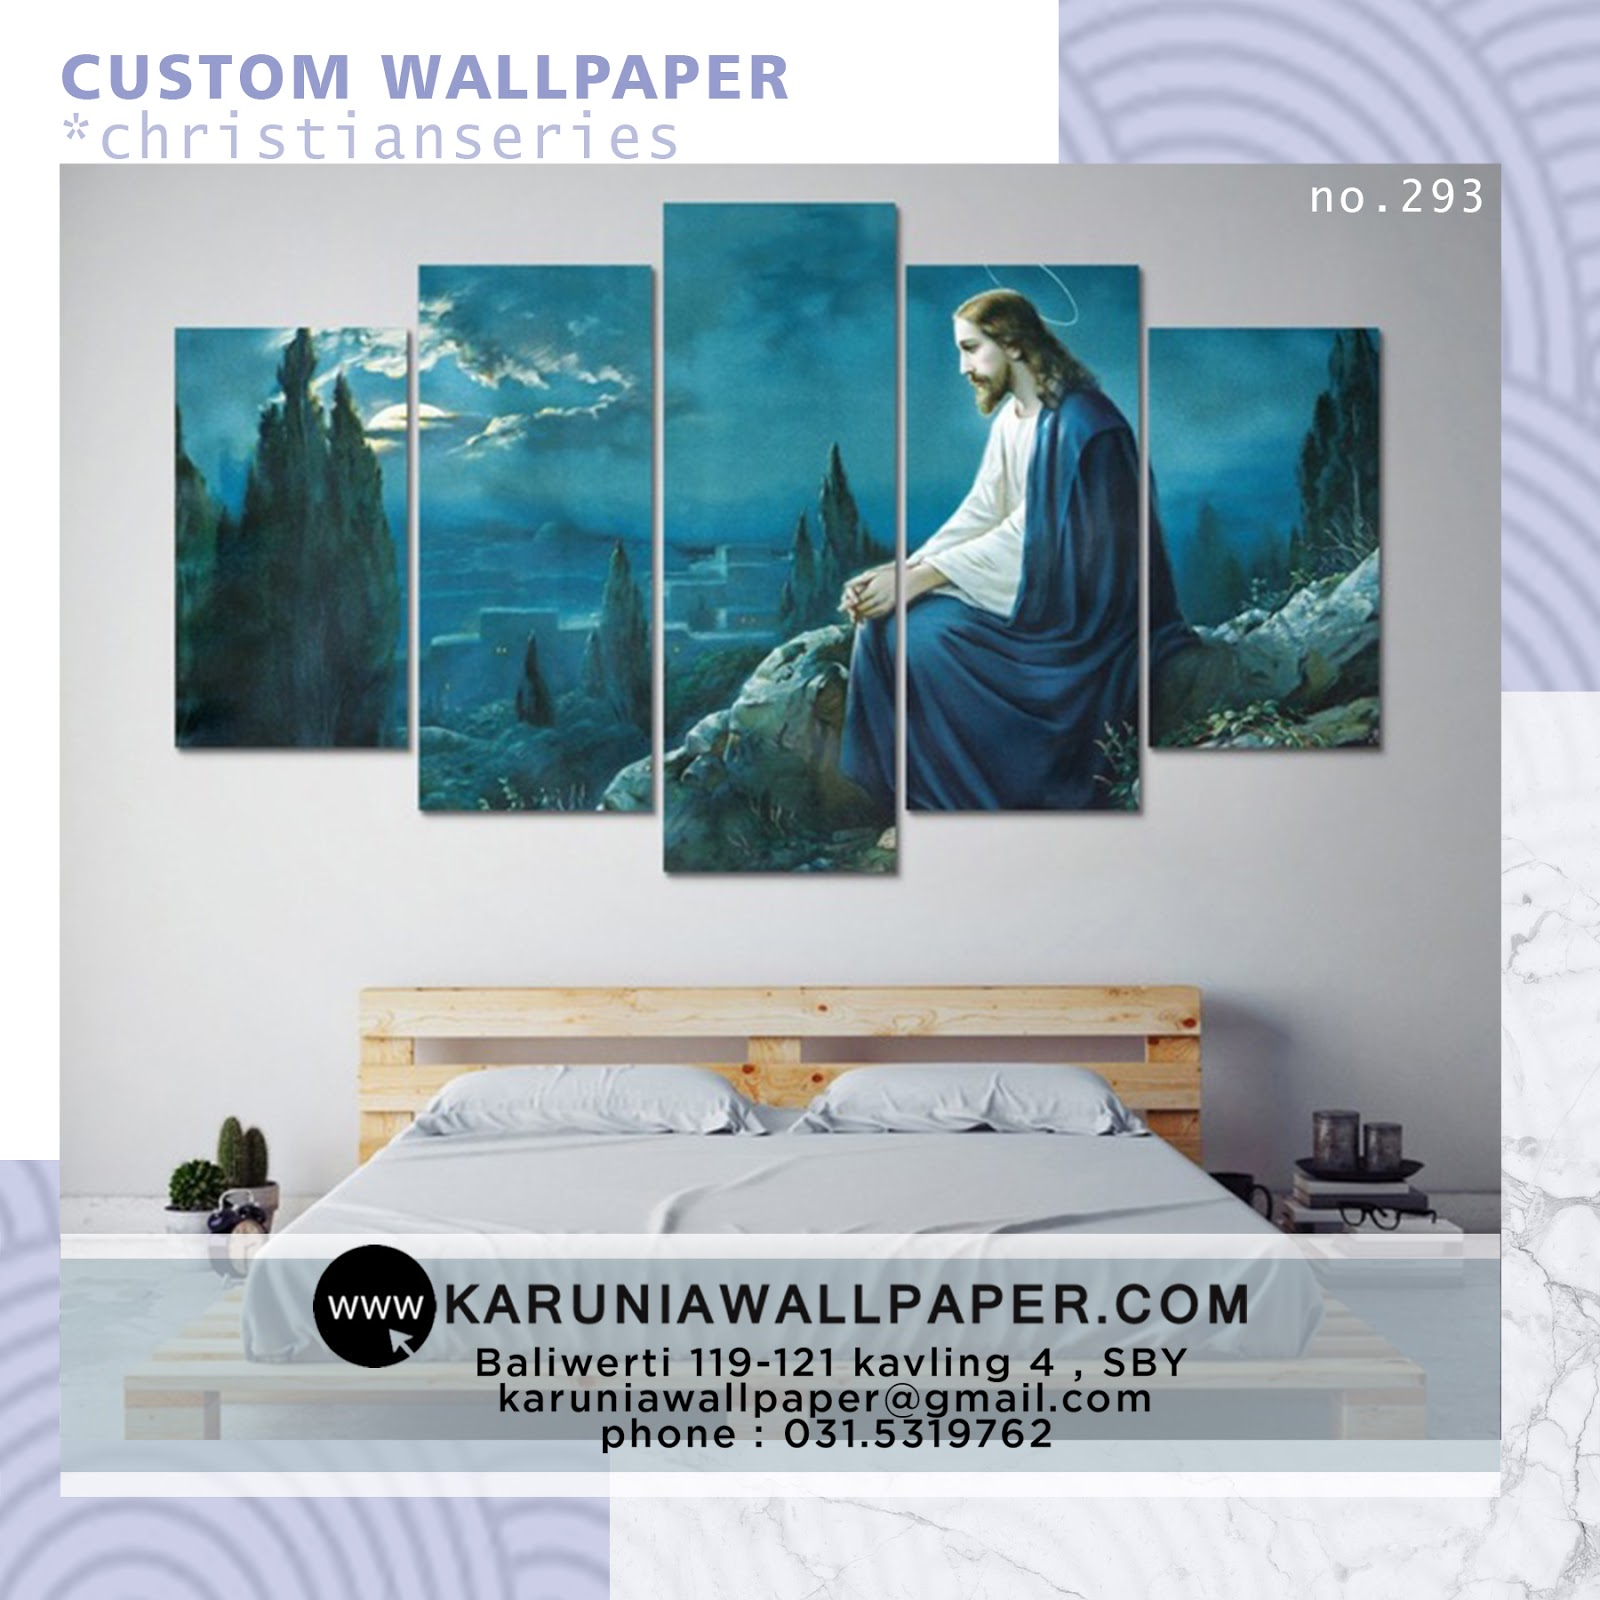 jual wallpaper custom kristen katolik